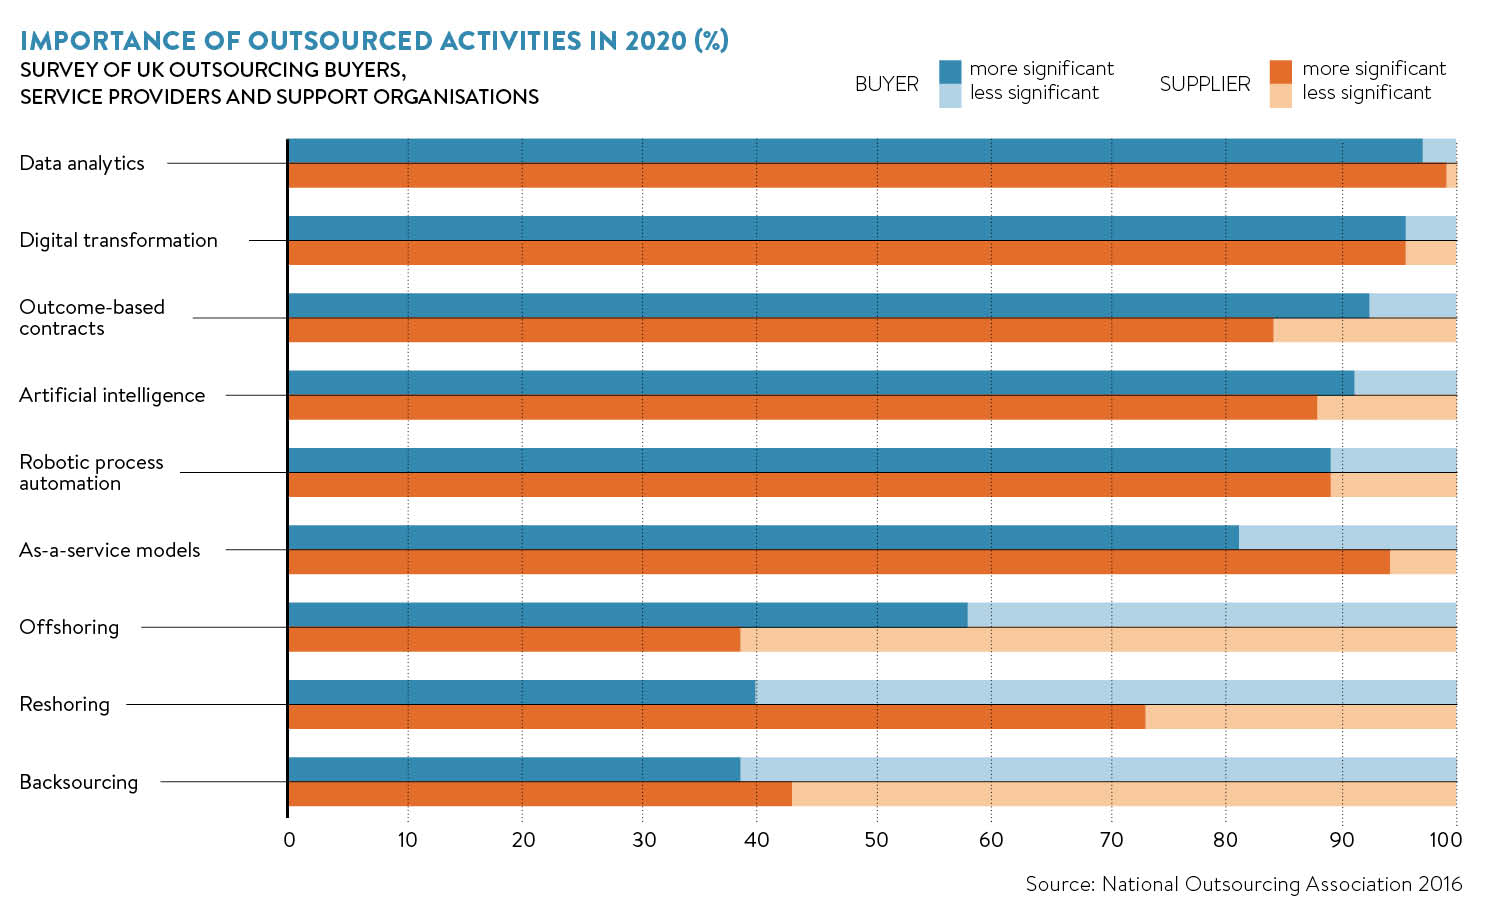 importance-of-outsourced-activities-in-2020